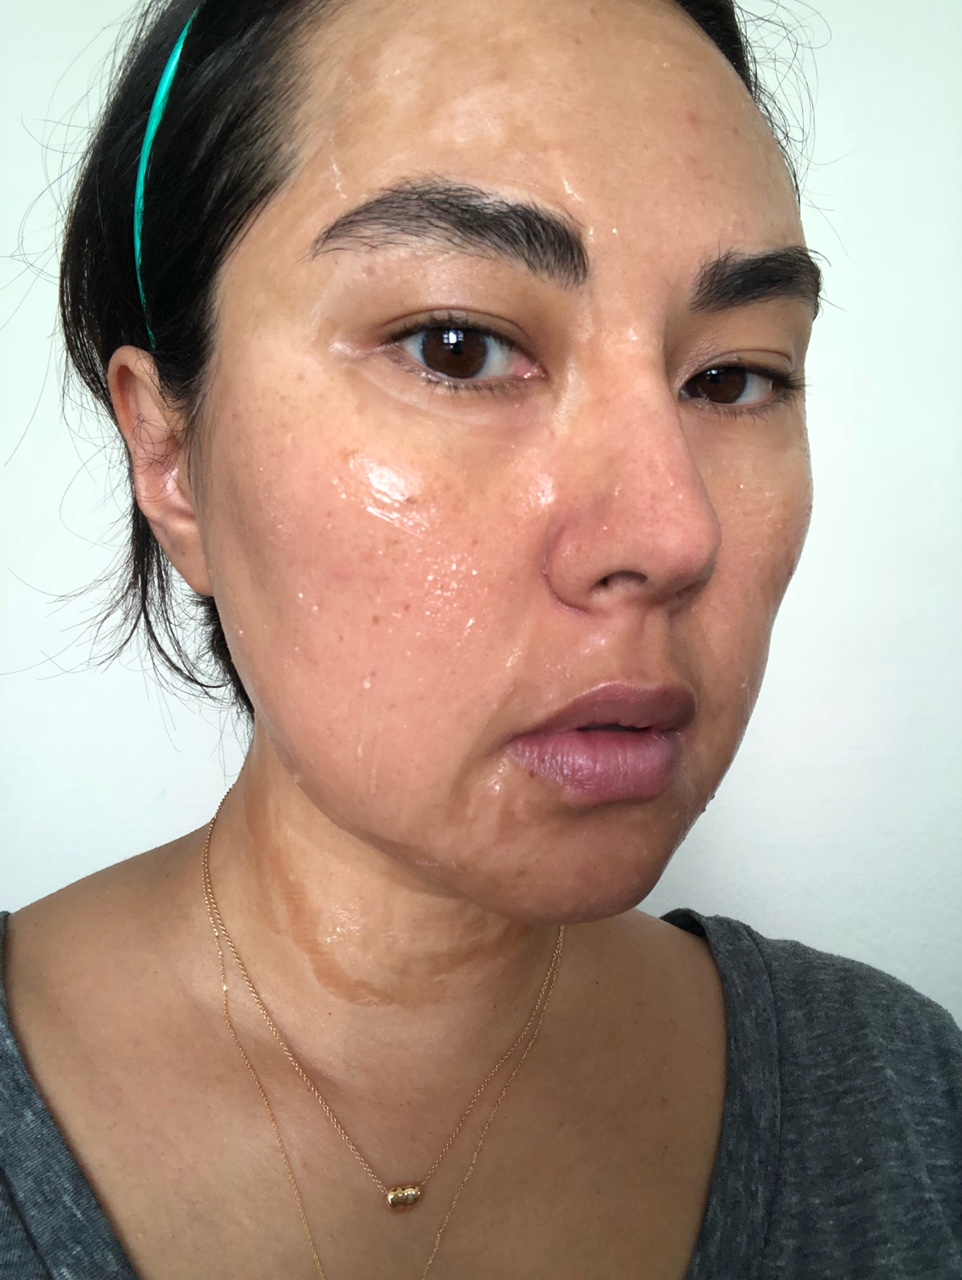 10 minutes - parts of my forehead, nose, mouth, neck, and second chin are already drying and beginning to pull. -